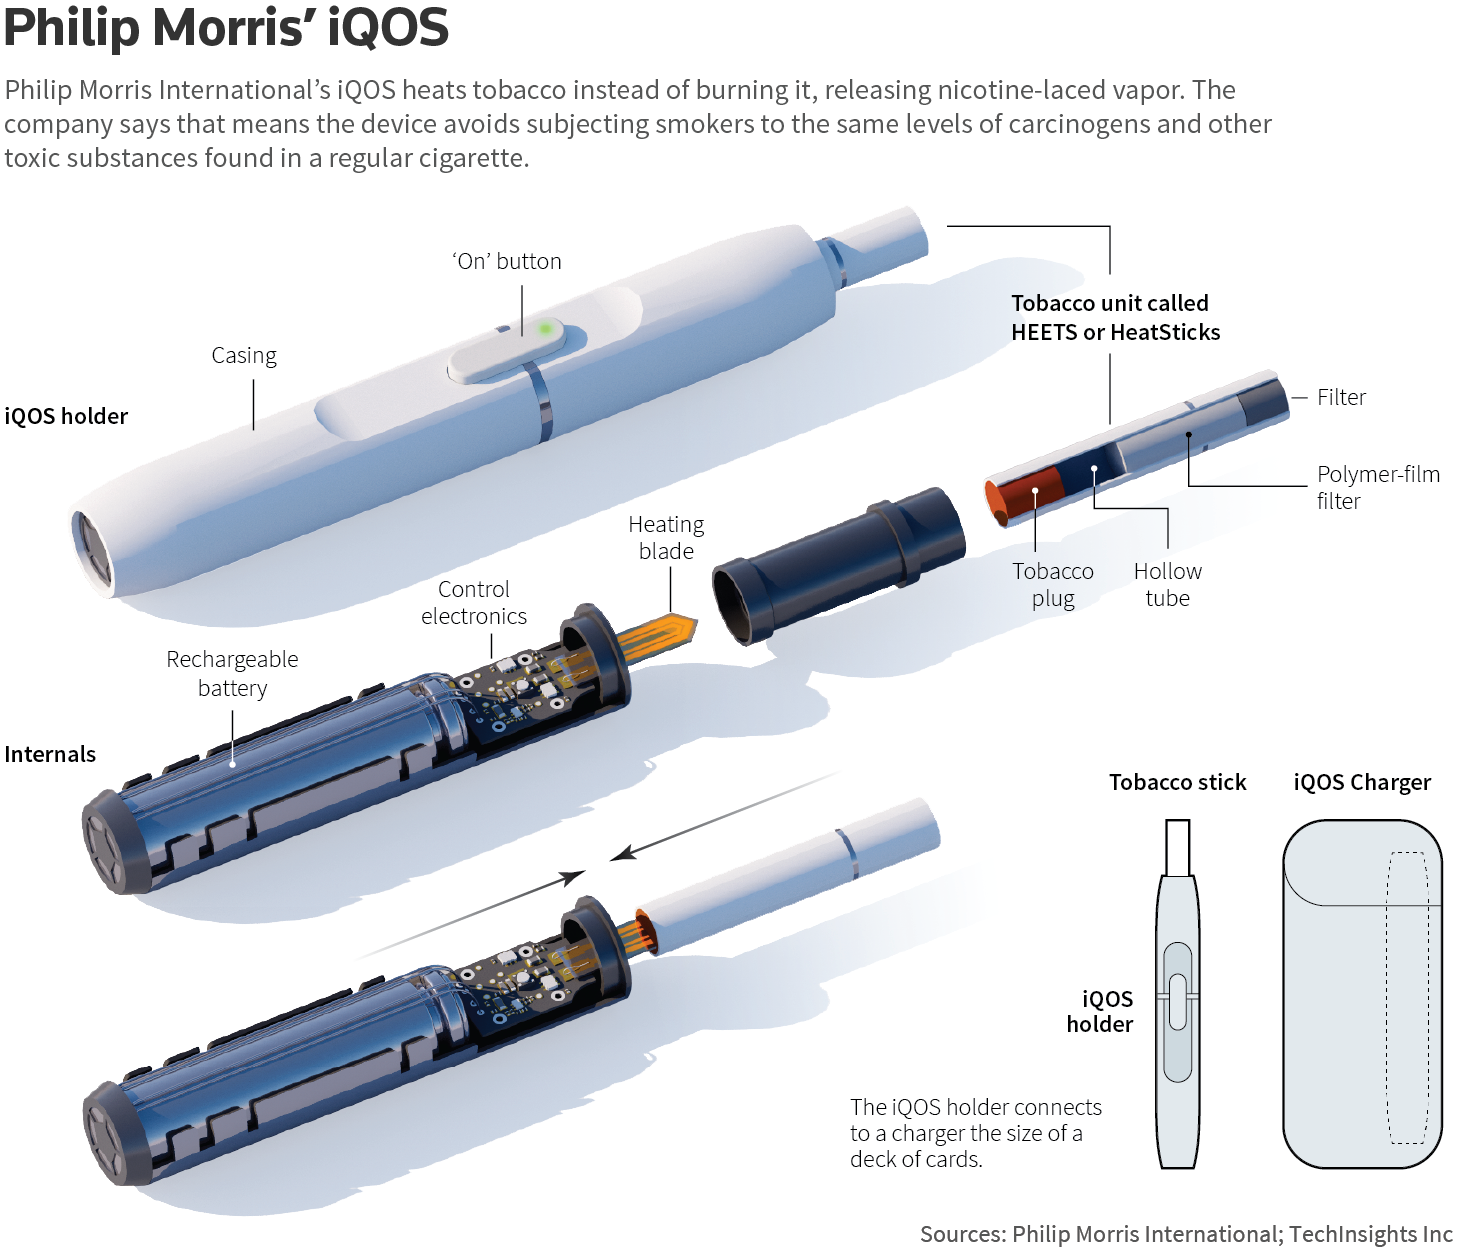 Scientists describe problems in Philip Morris e-cigarette